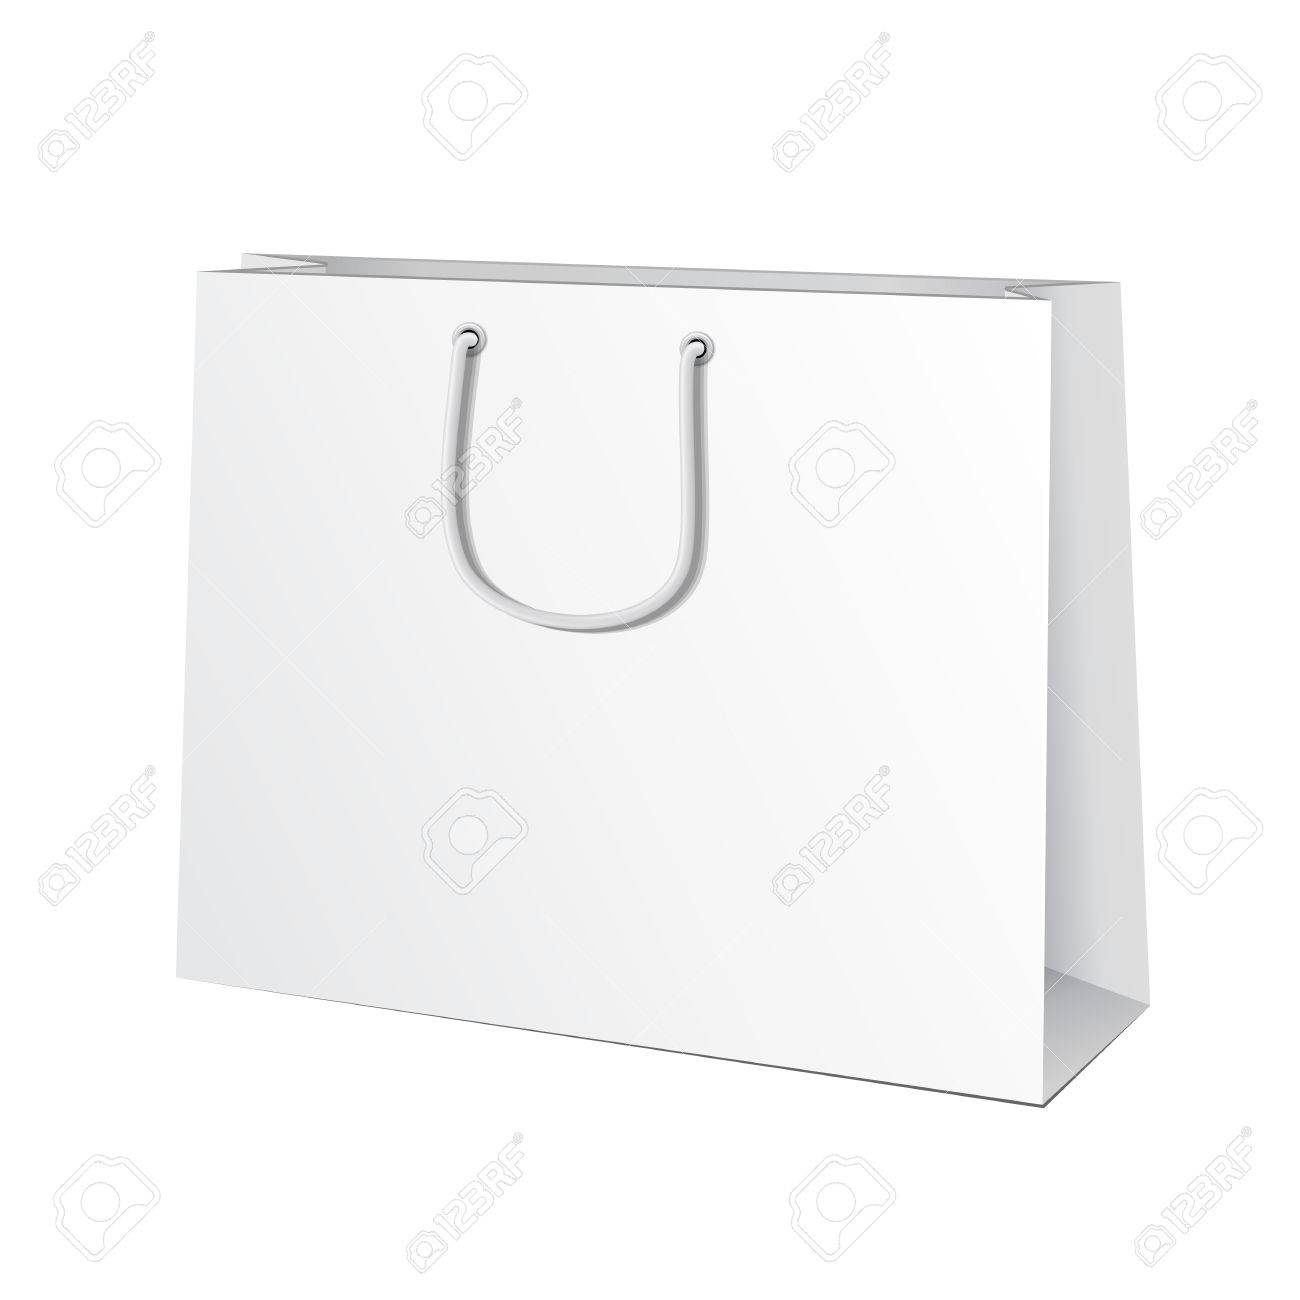 Paper bag vector - Carrier Paper Bag White Illustration Isolated On White Background Ready For Your Design